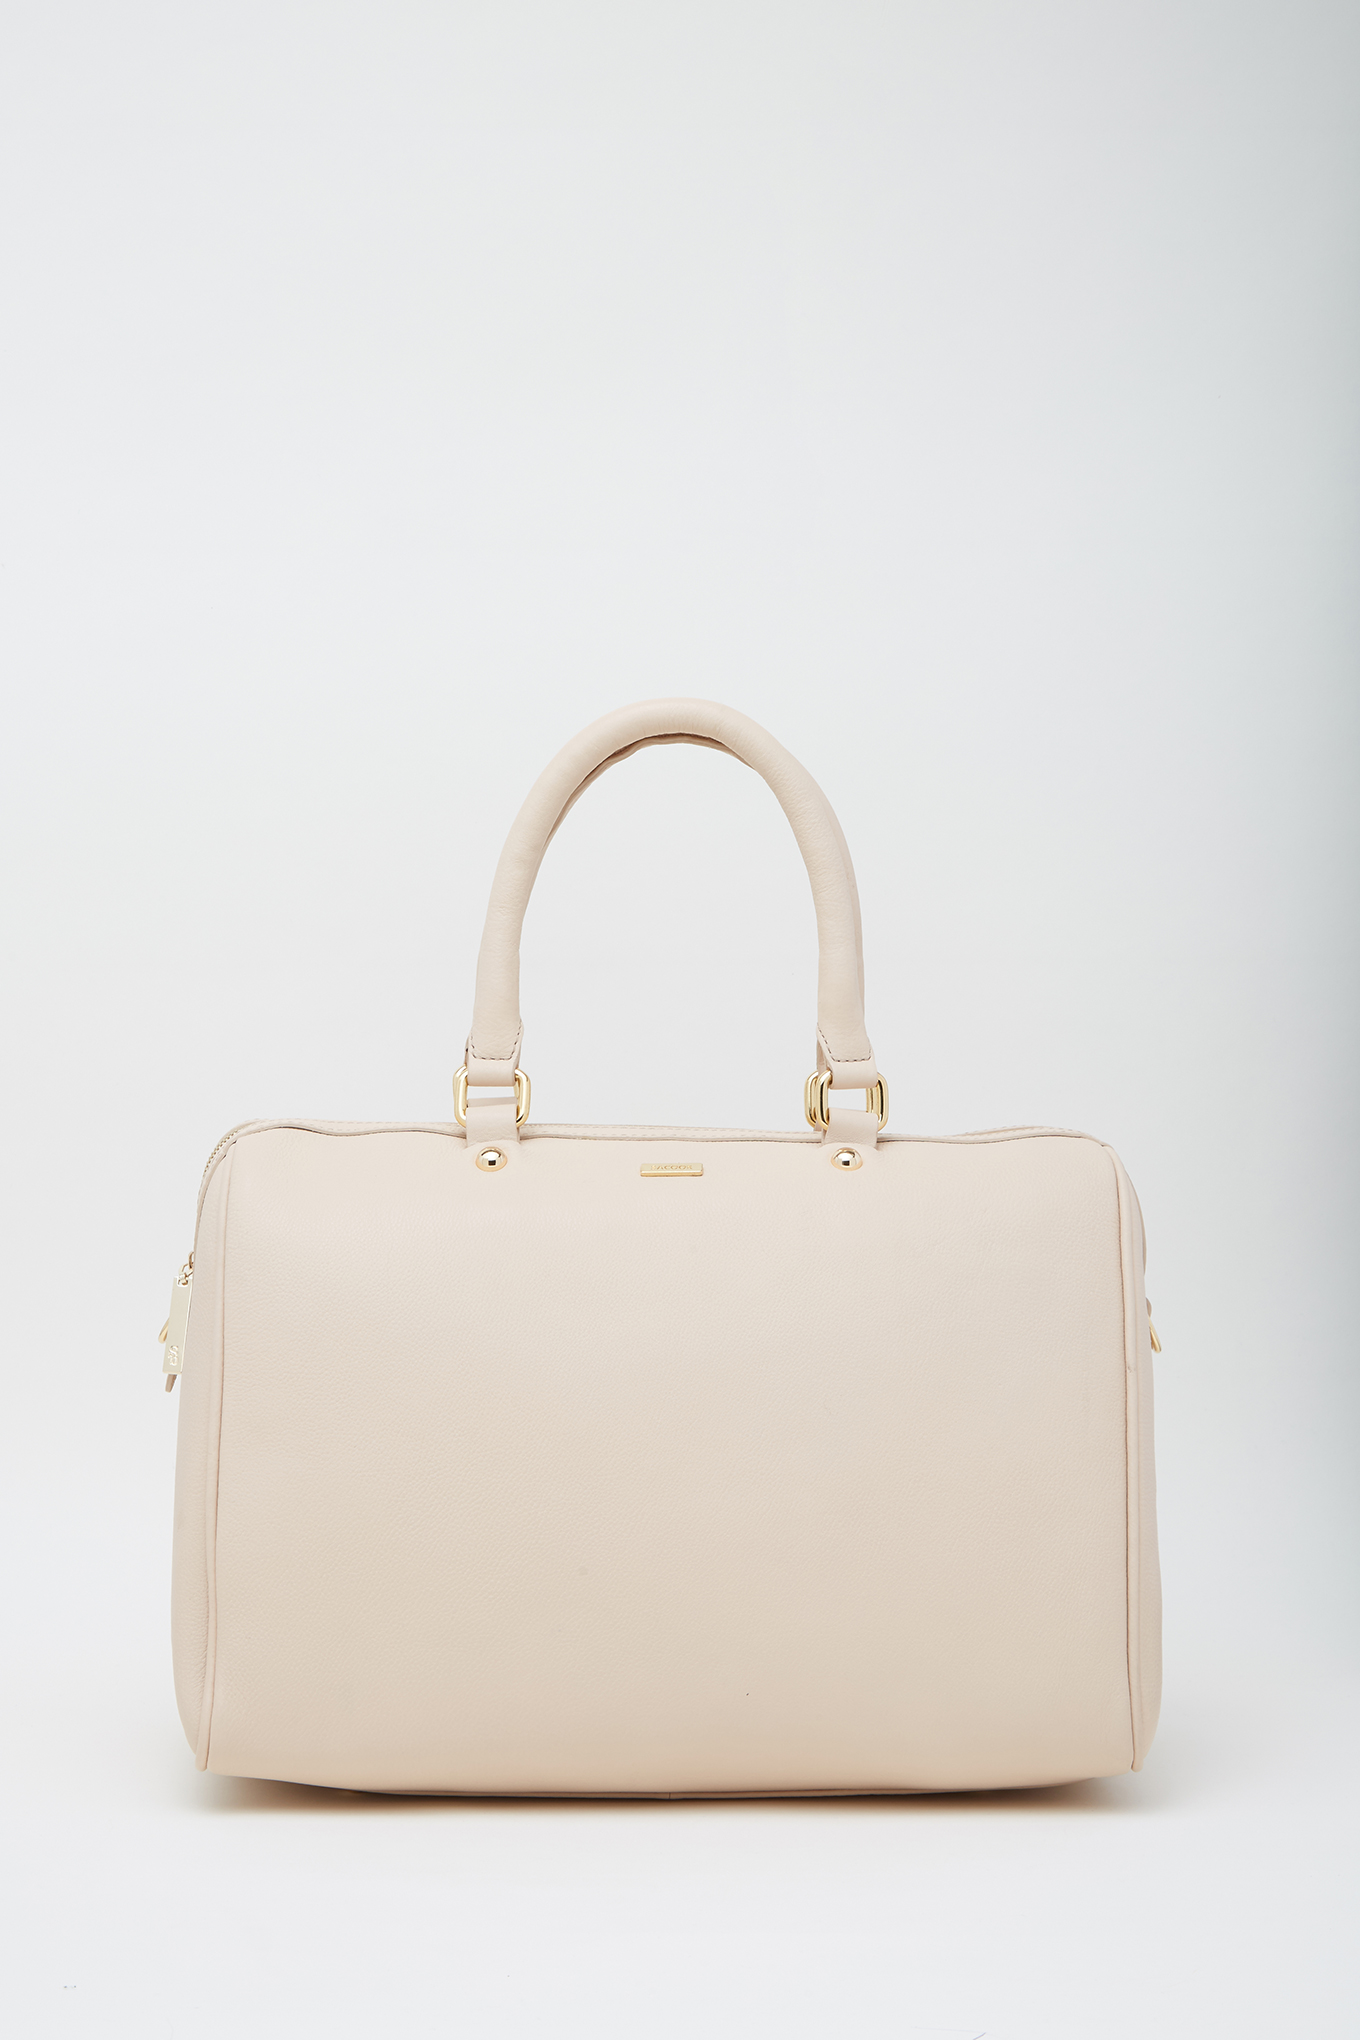 Bag Beige Classic Woman